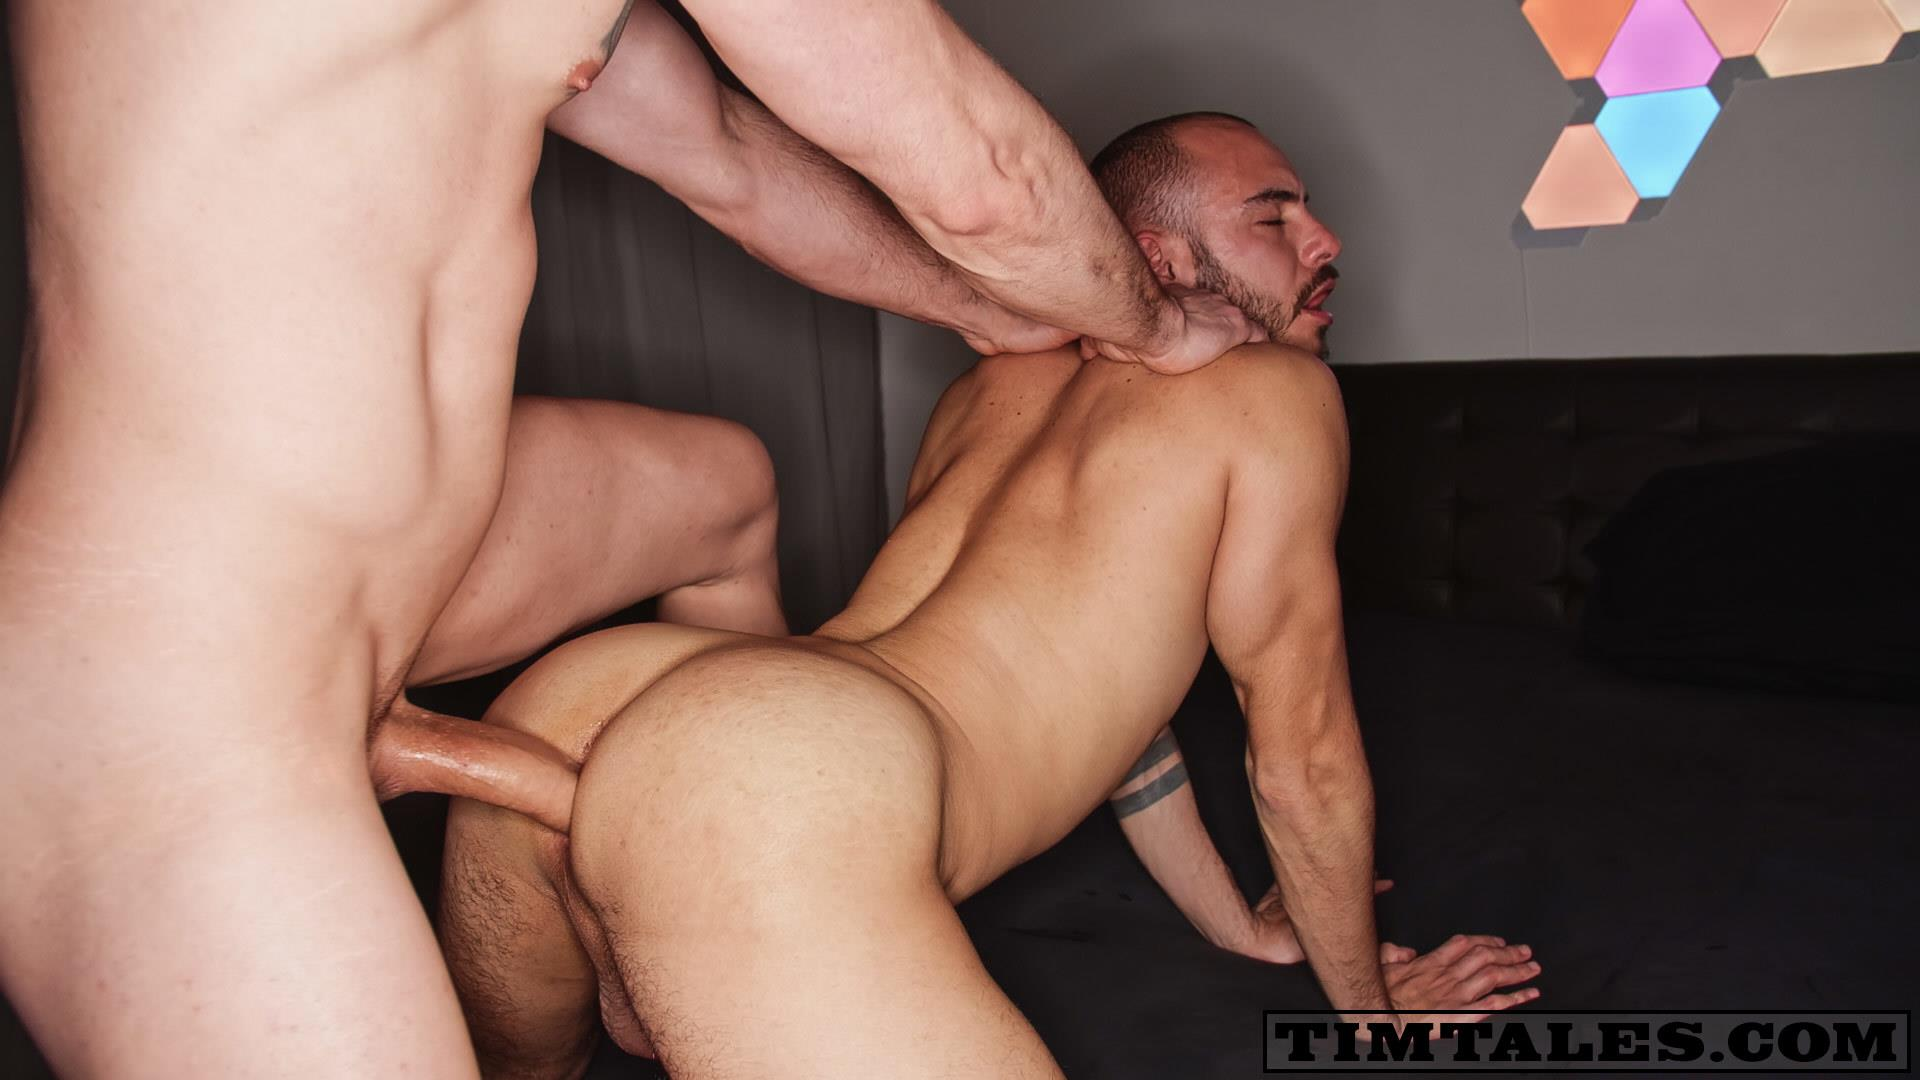 TimTales-Patrick-Dei-and-Vicman-Big-Dick-Bareback-Gay-Sex-Video-06 TimTales: Vicman Barebacks Patrick Dei With His Big Daddy Dick